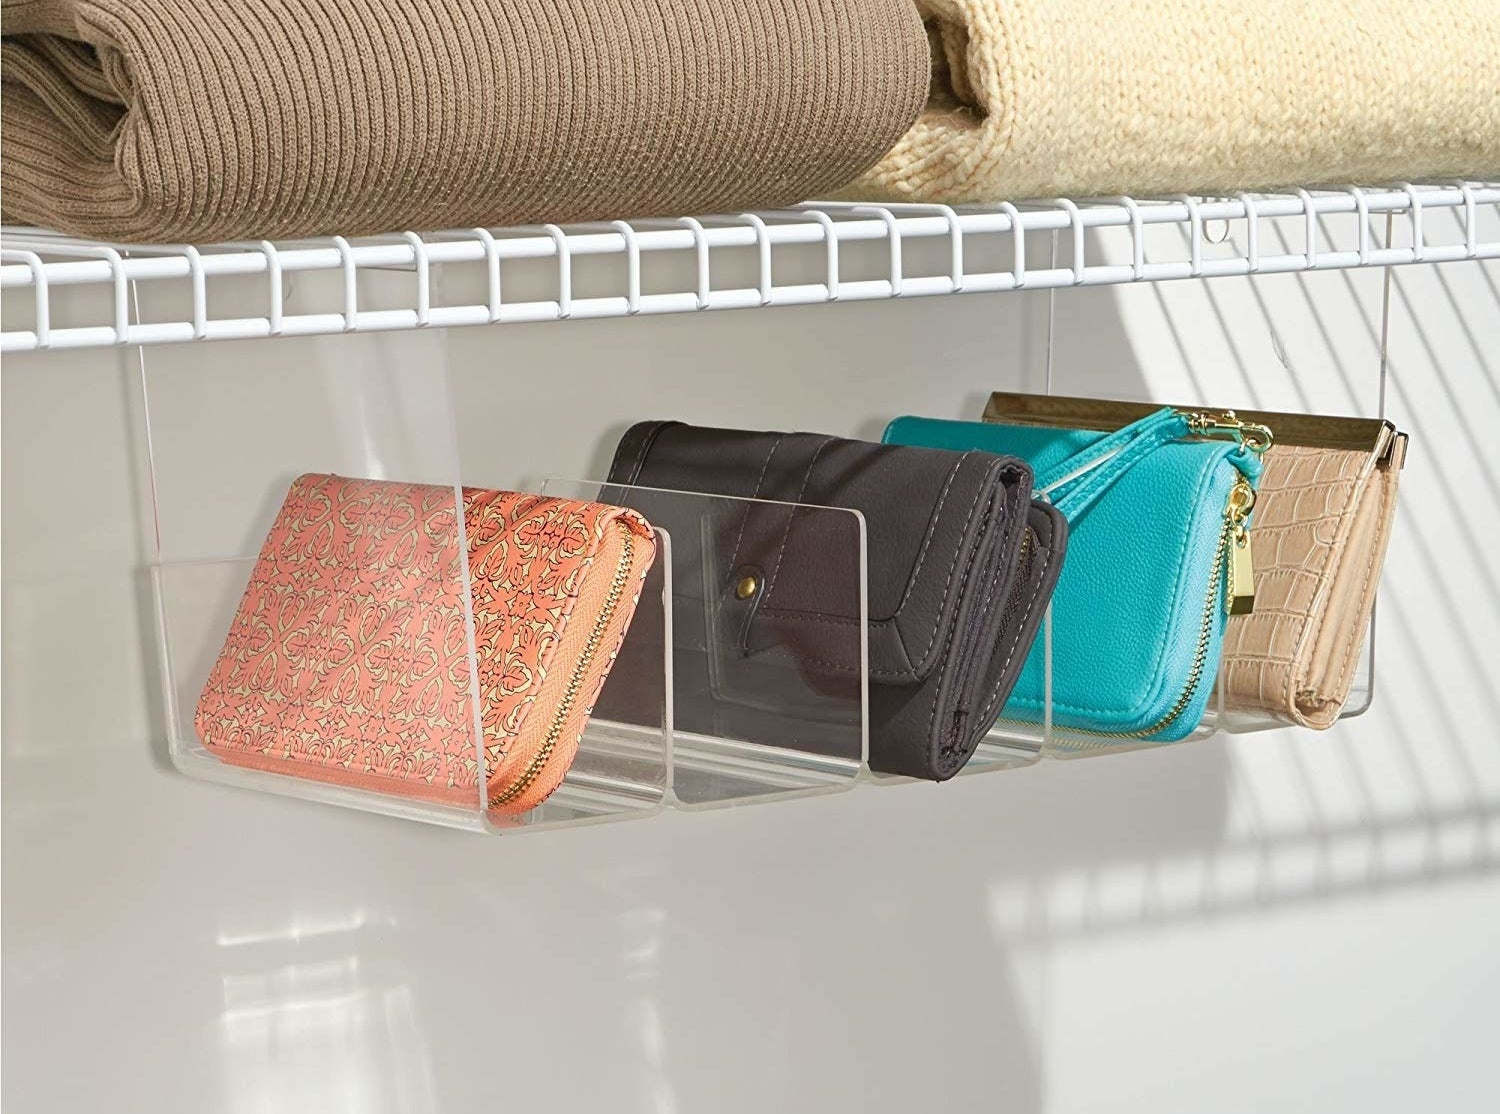 small clear shelf attached to the bottom of a wire shelf with five slots big enough to fit wallets and small purses